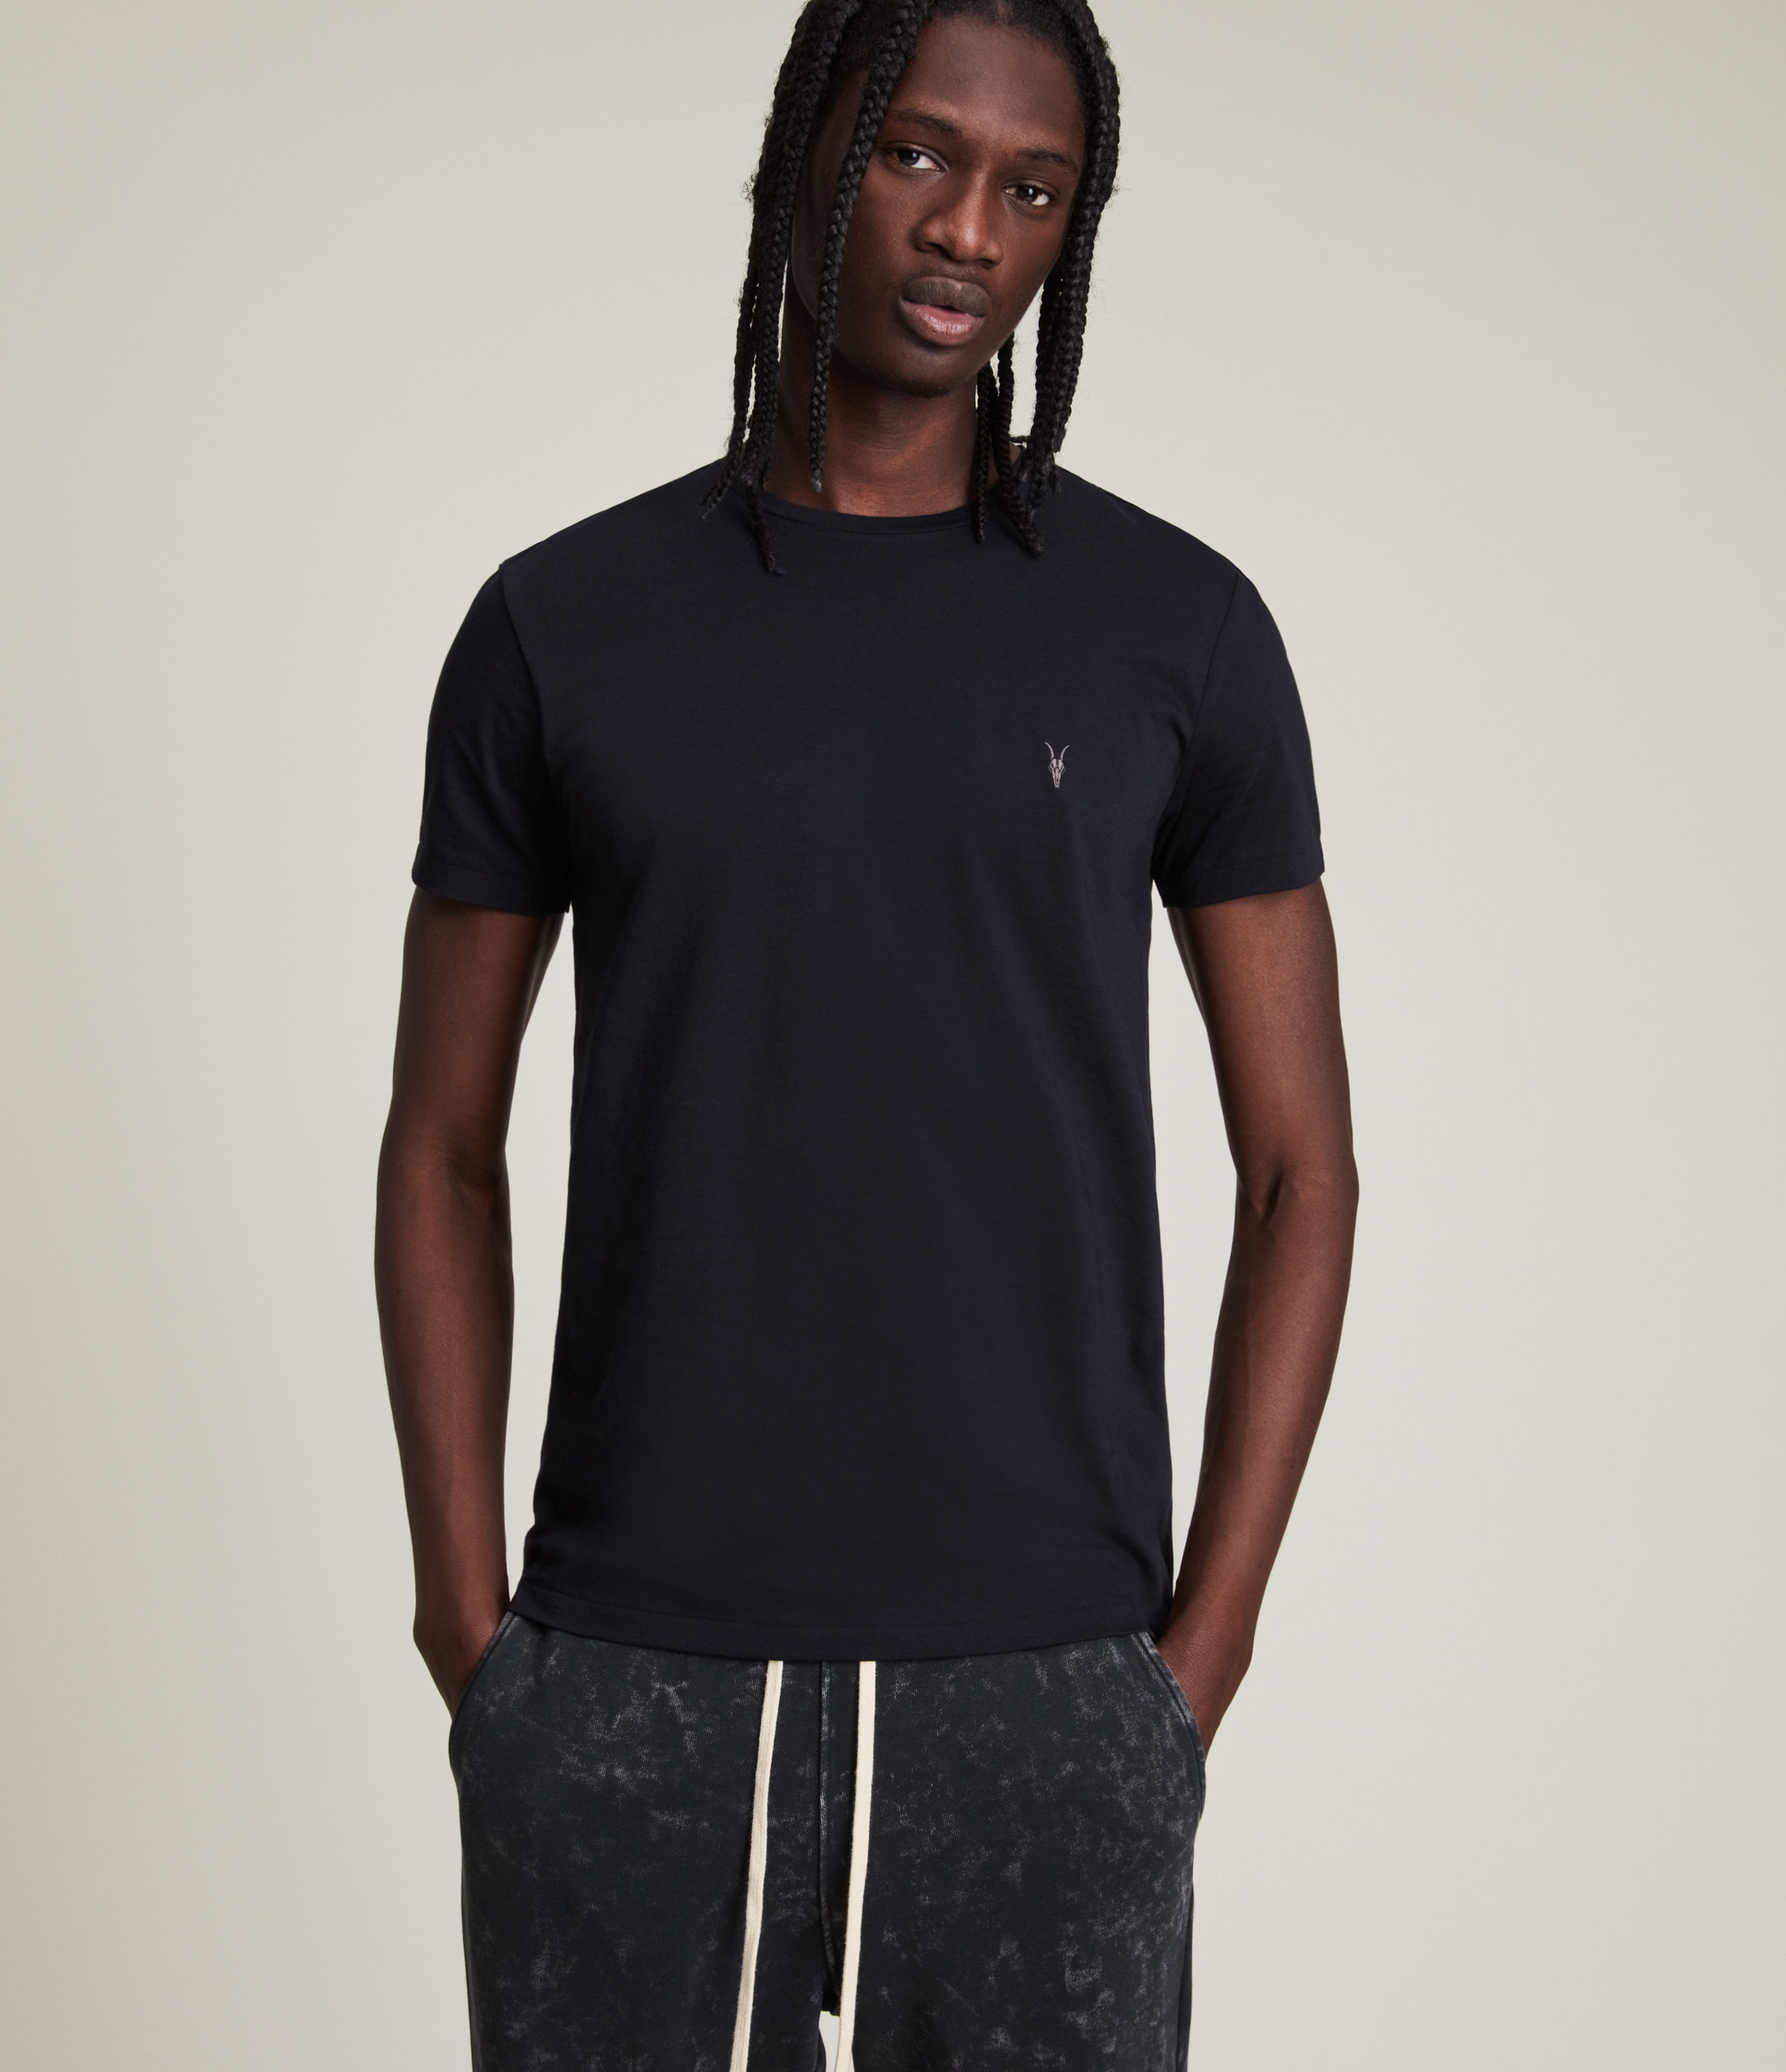 AllSaints Men's Cotton Slim Fit Regular Tonic Crew T-Shirt, Navy, Size: S